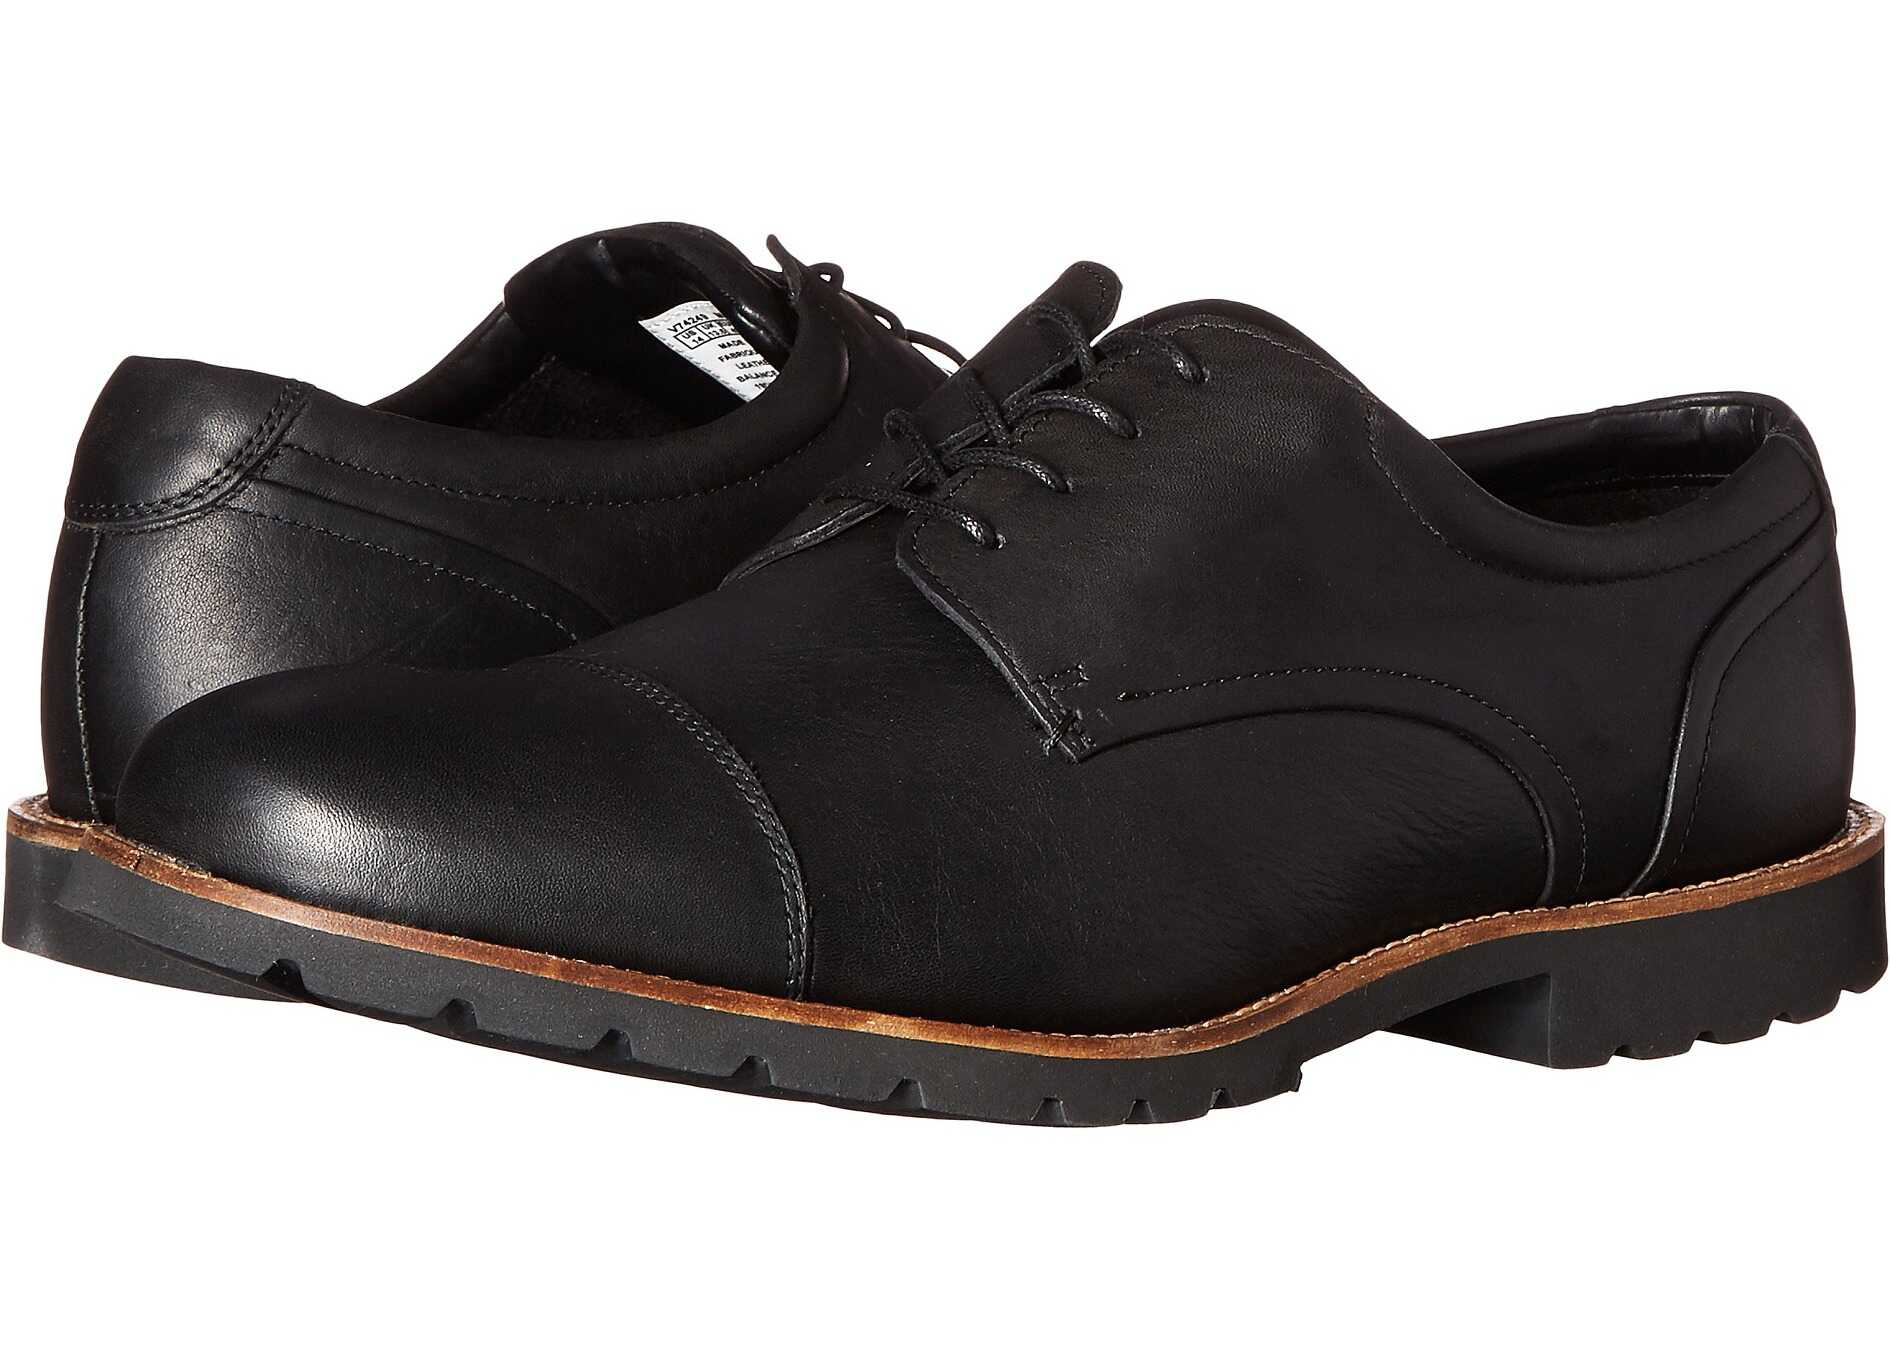 Rockport Channer Black